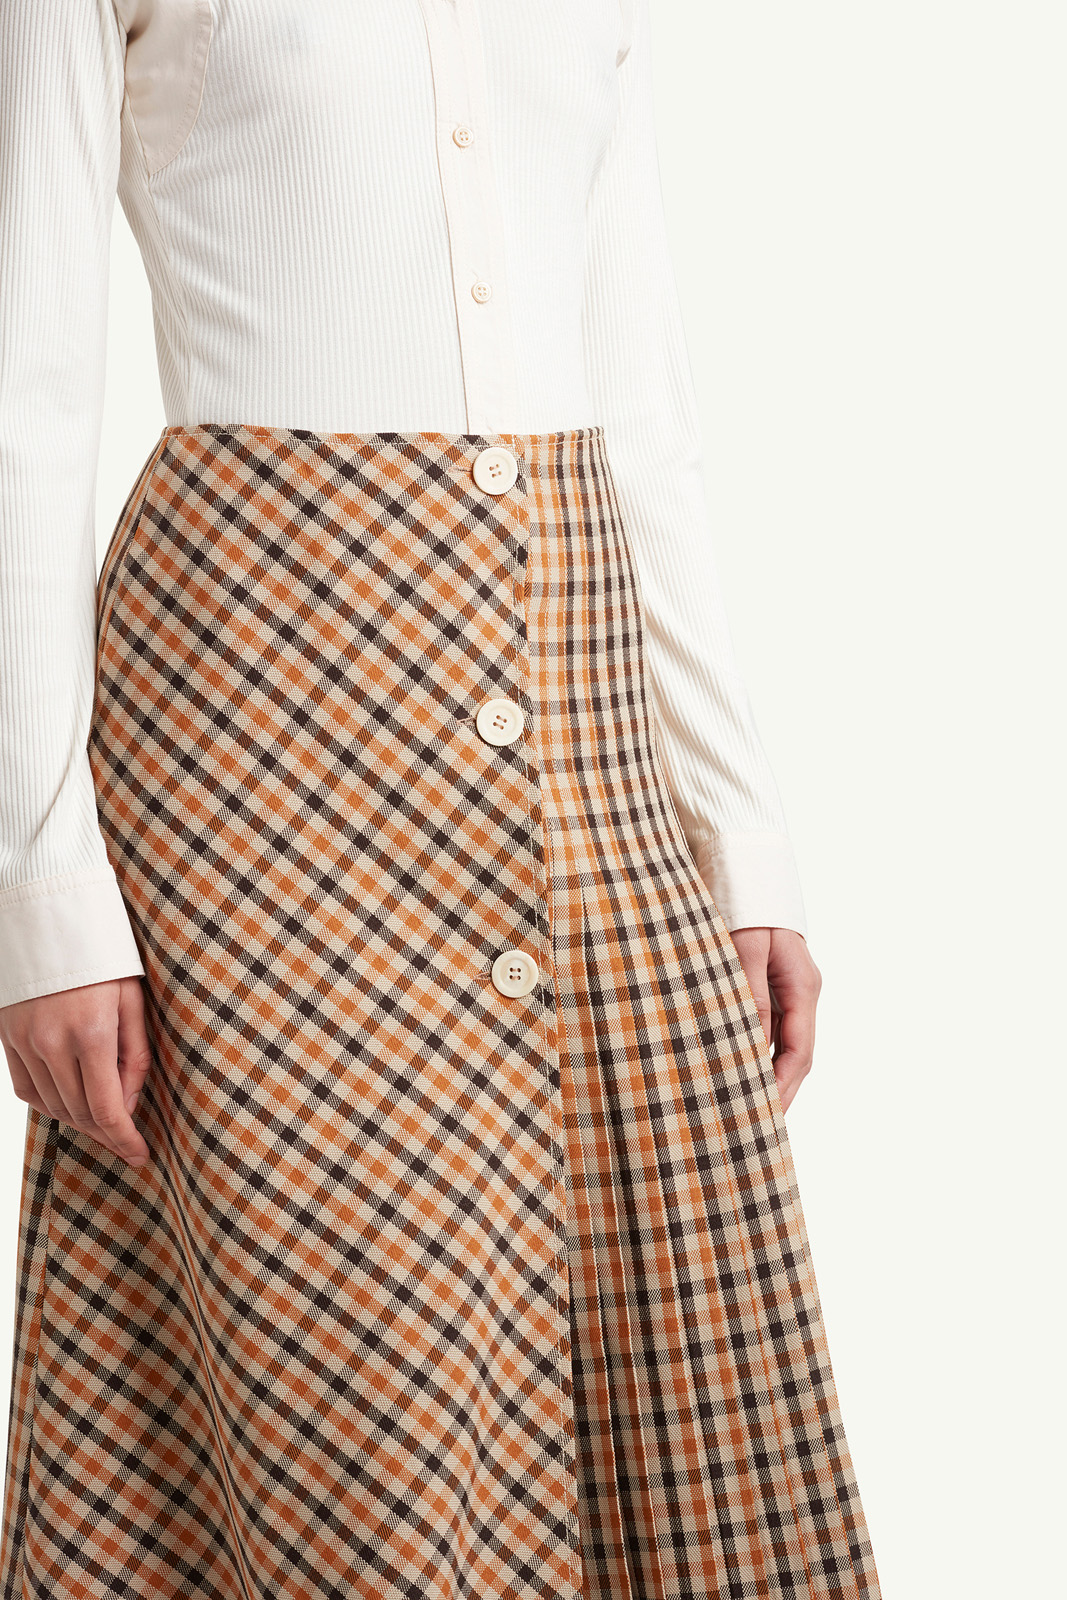 close up shot of Womenswear Model wearing light brown checkered skirt with white top